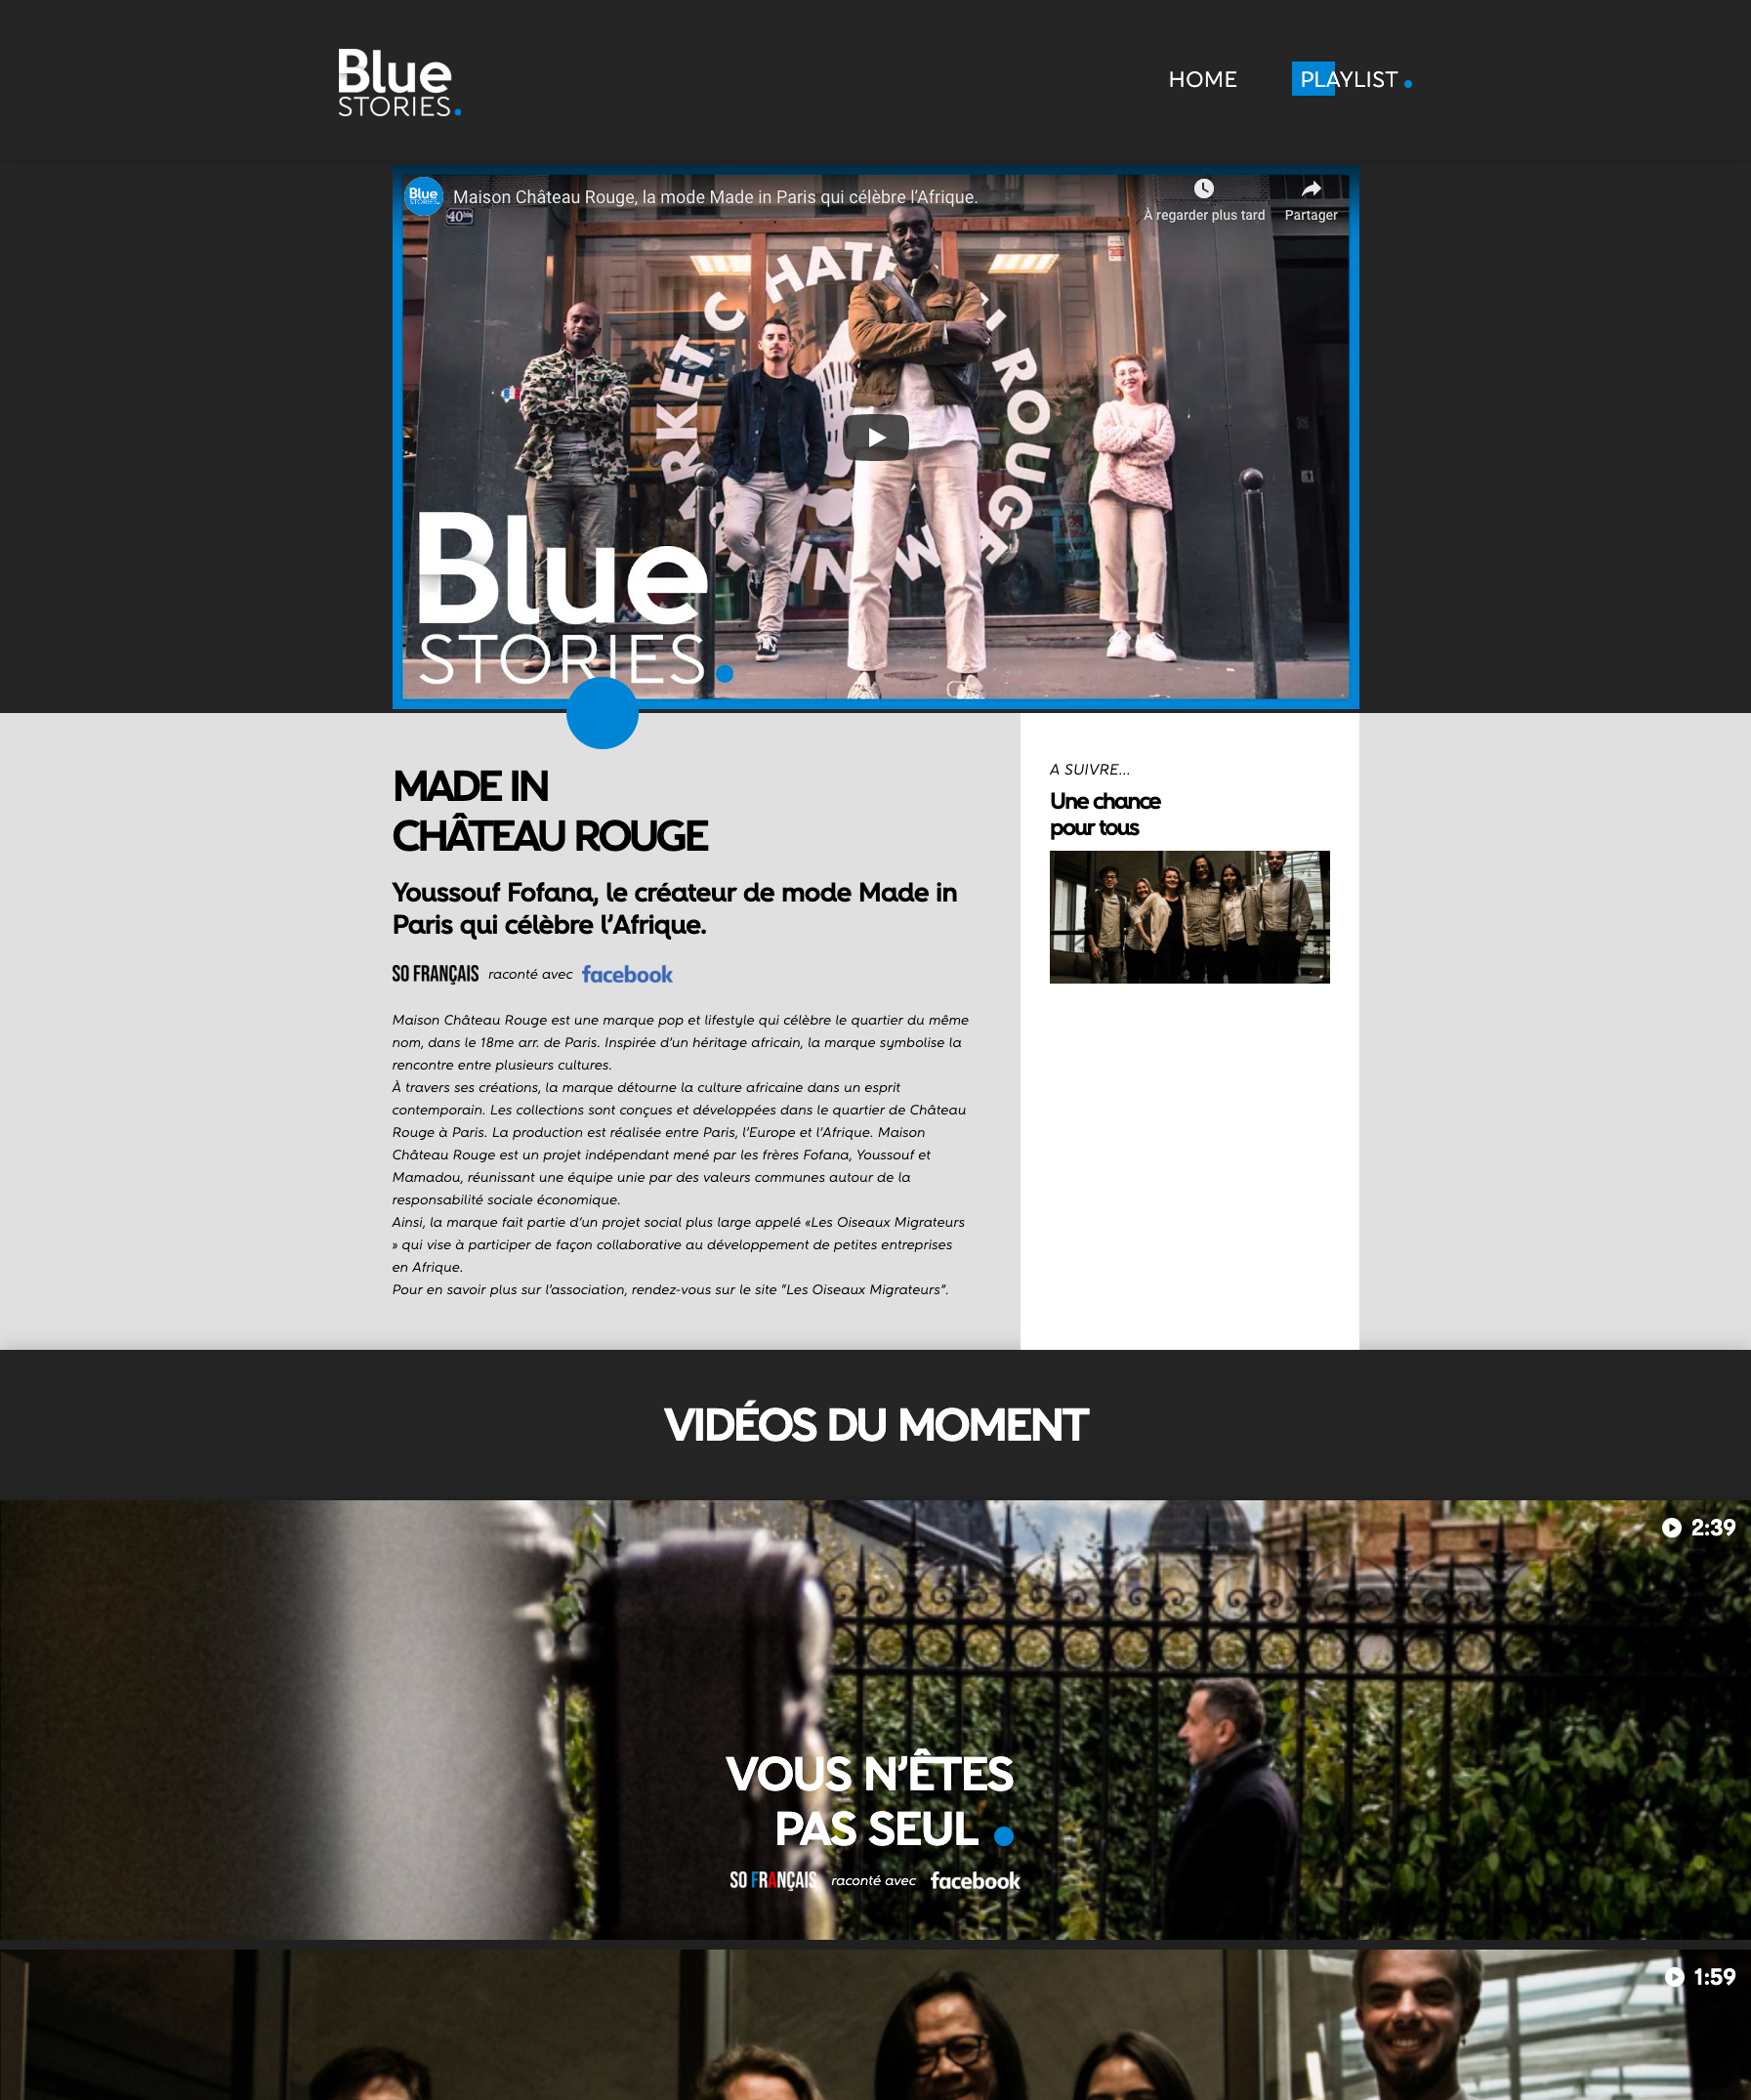 Ecran 1 du site Blue Stories